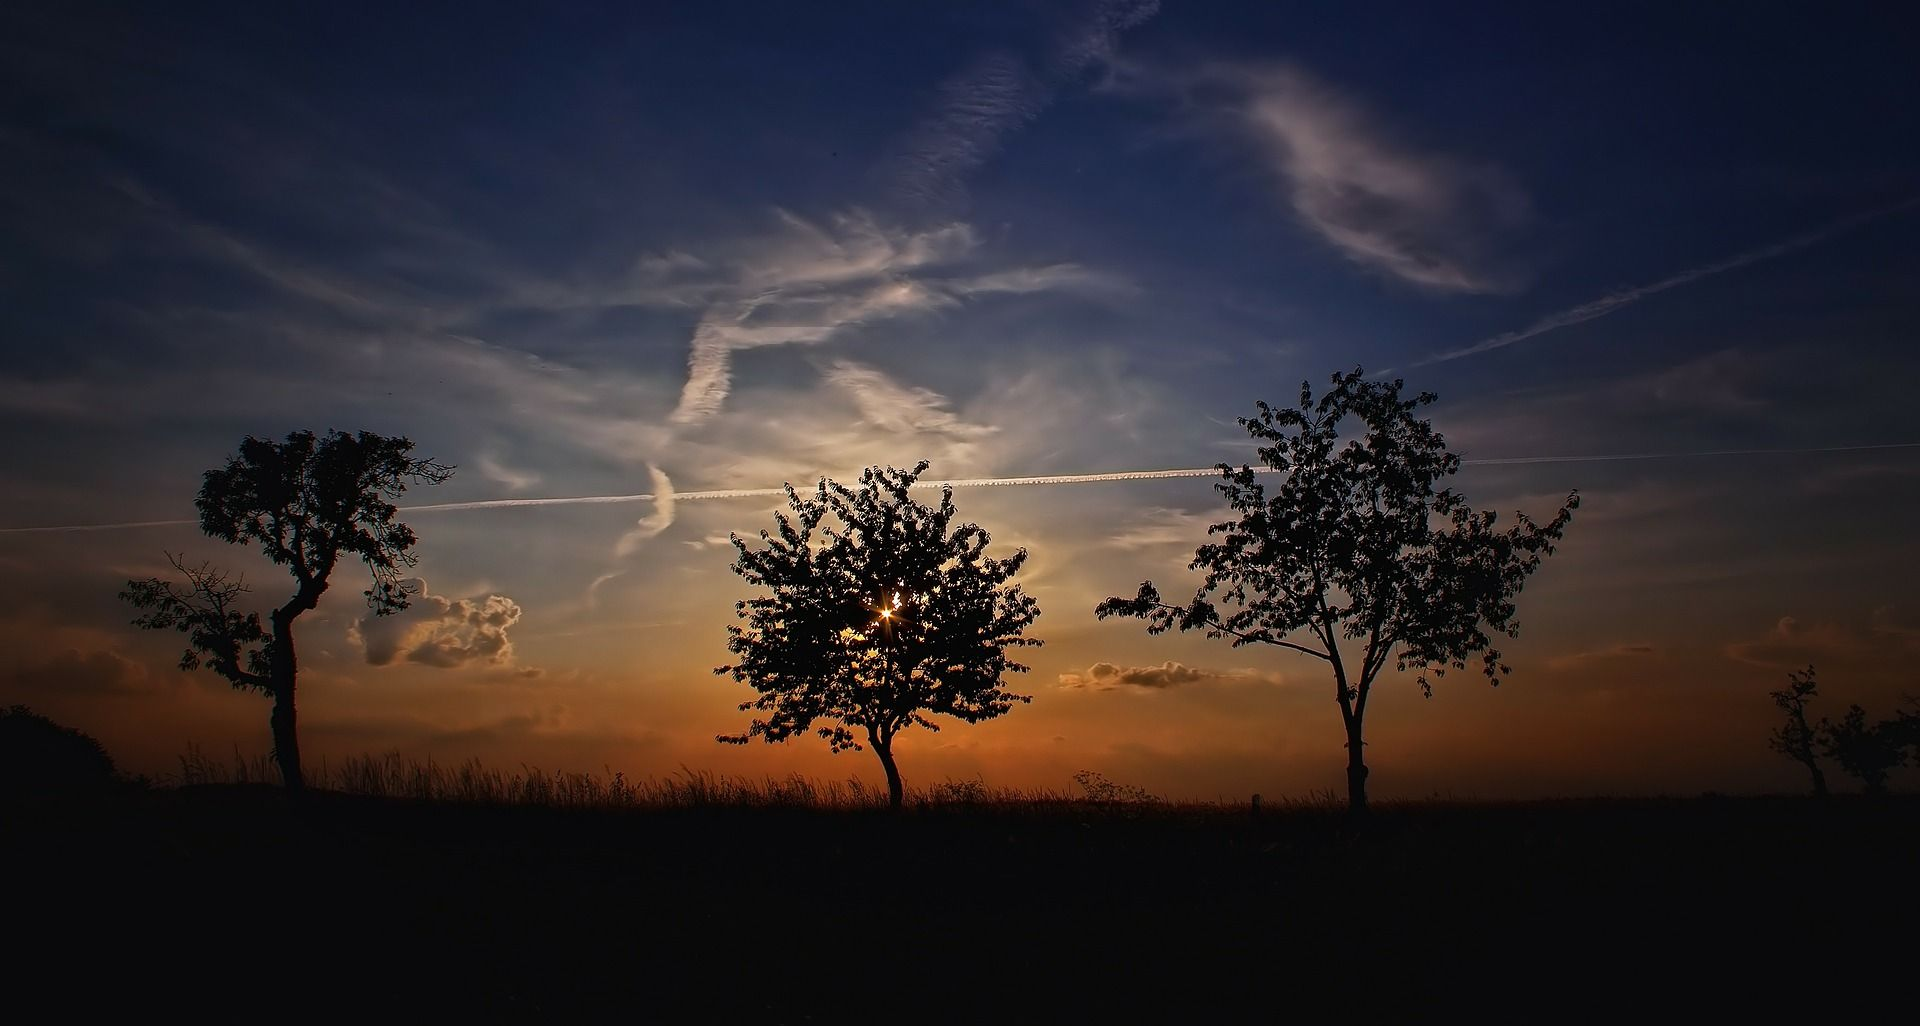 Trees under beautiful skies in the sunset